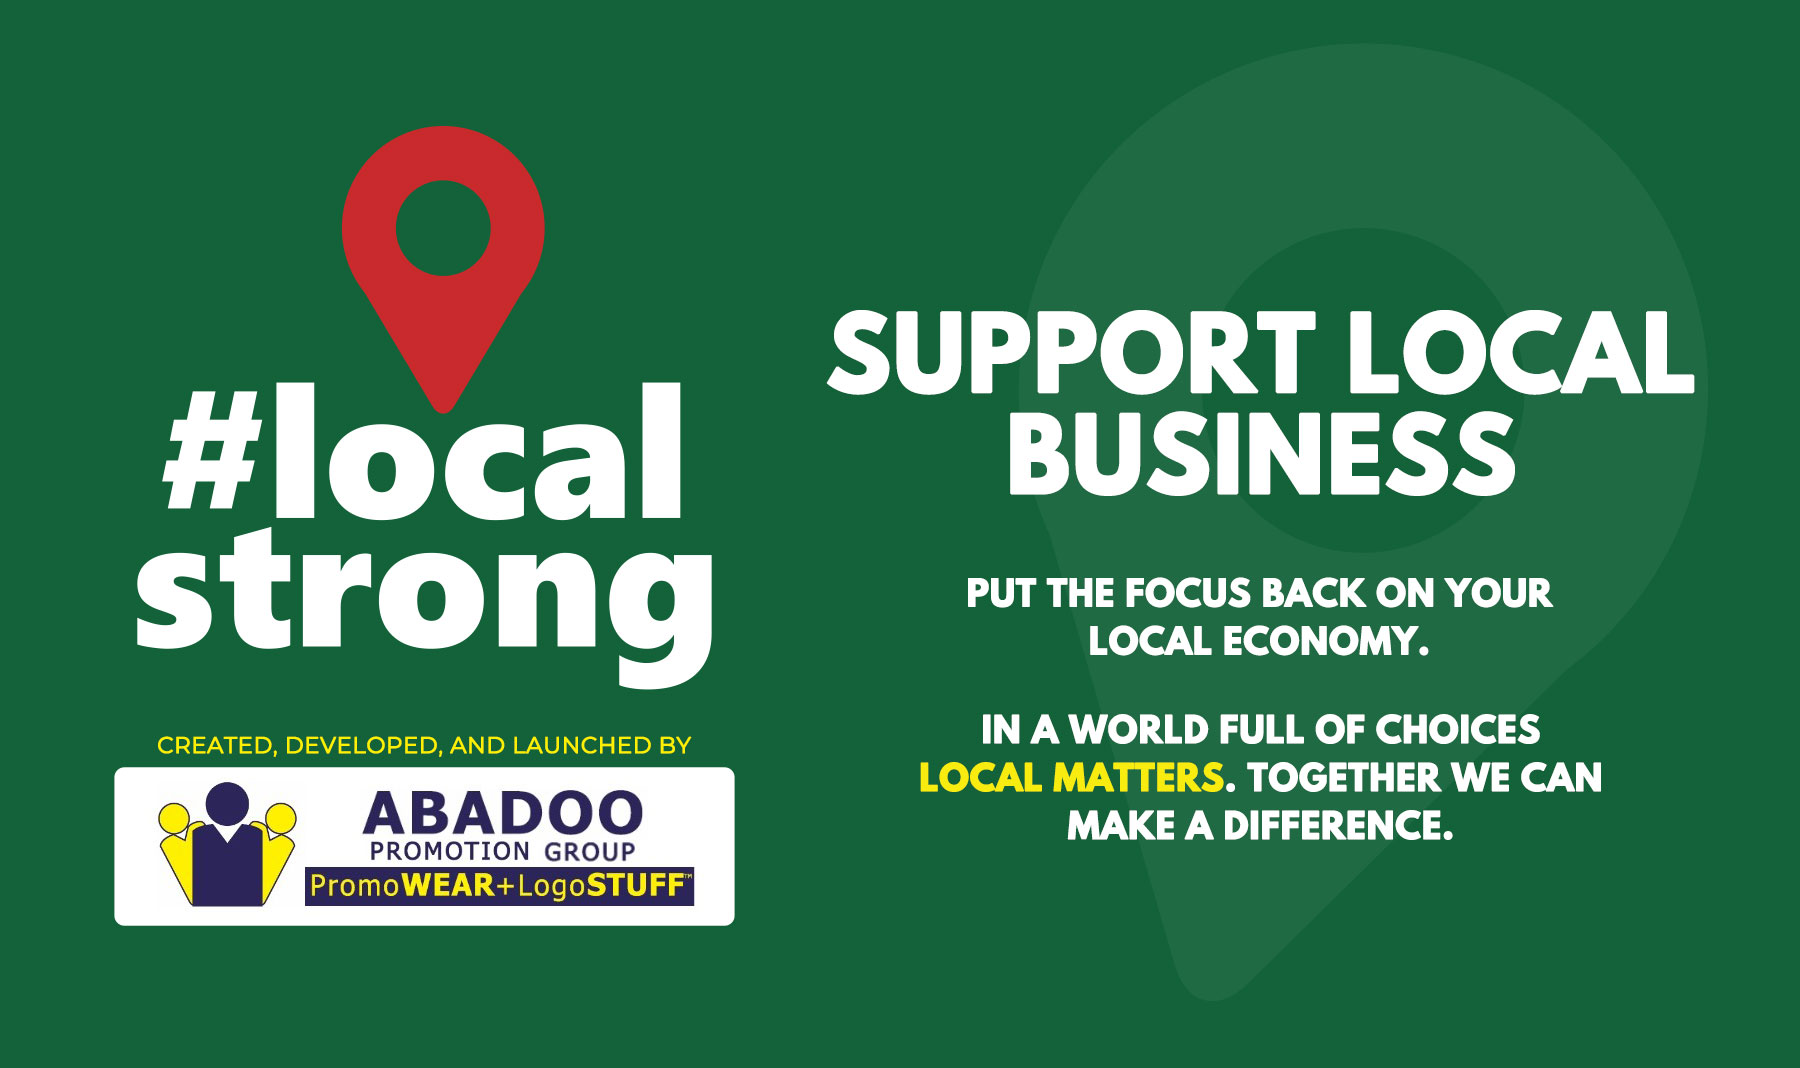 #LocalStrong support local by ABADOO